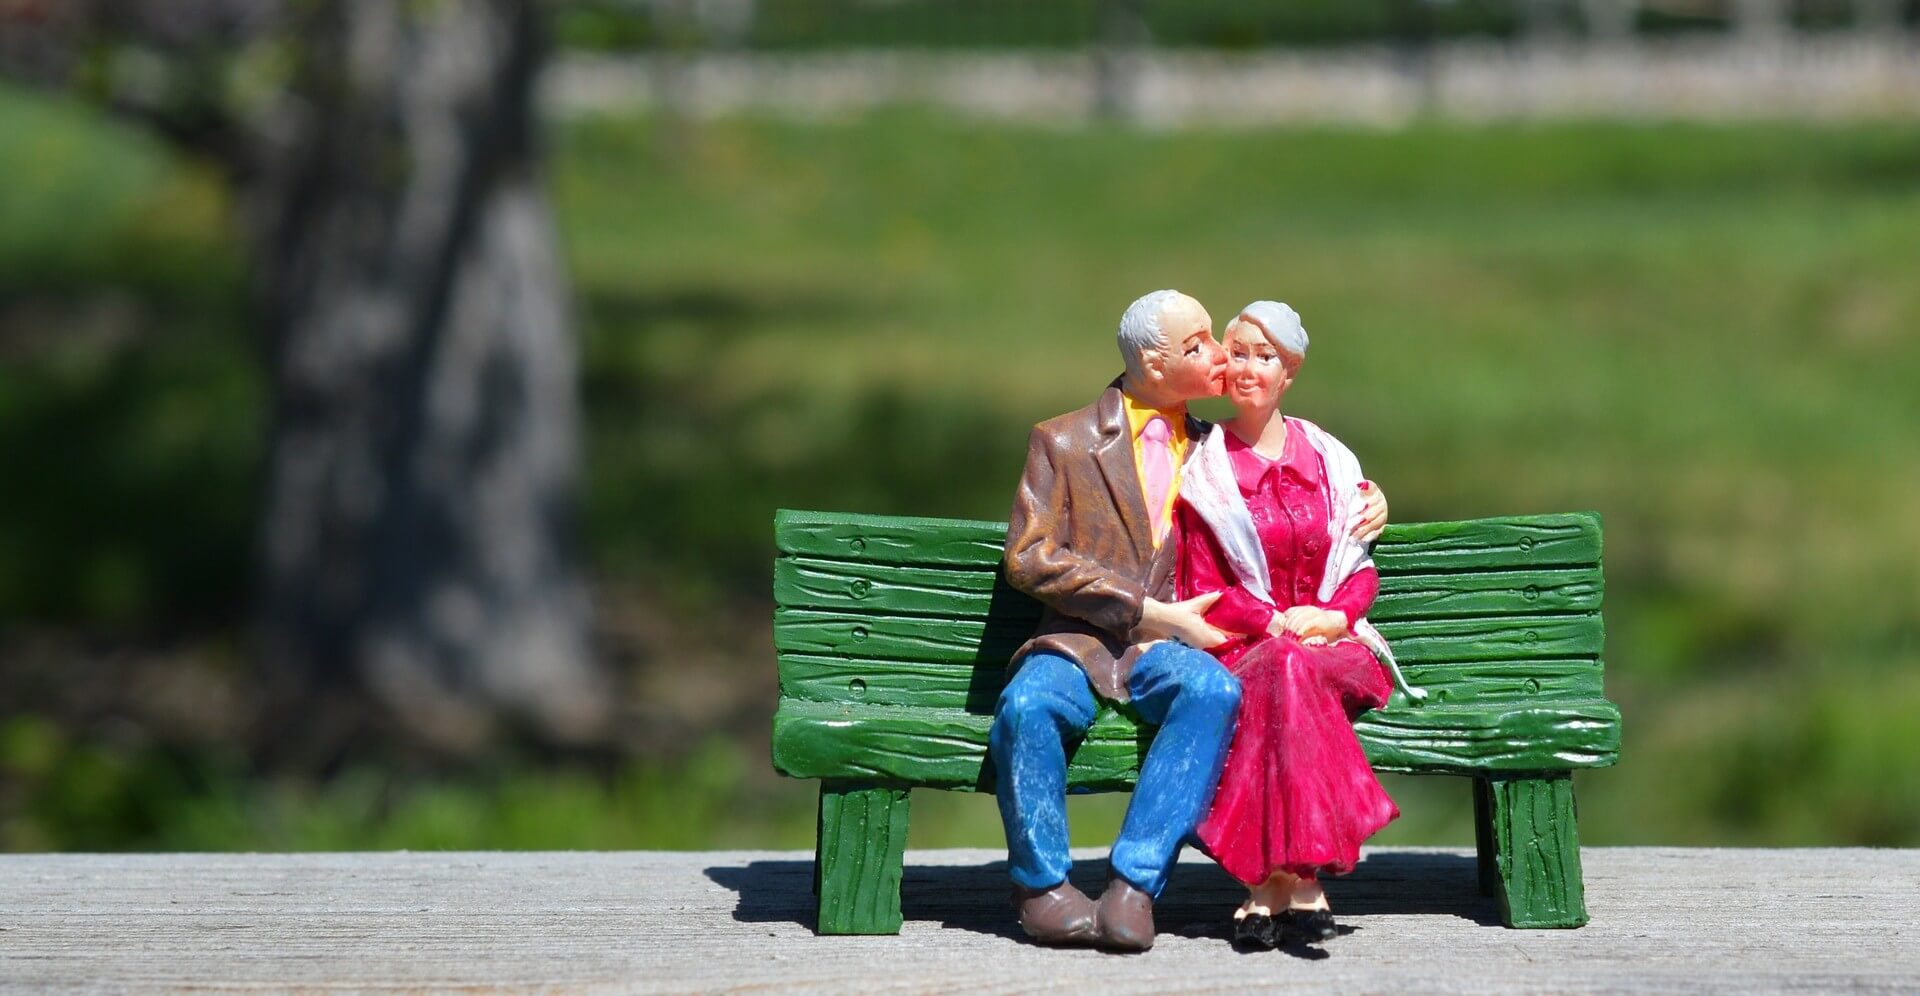 The old couple sitting on the bench